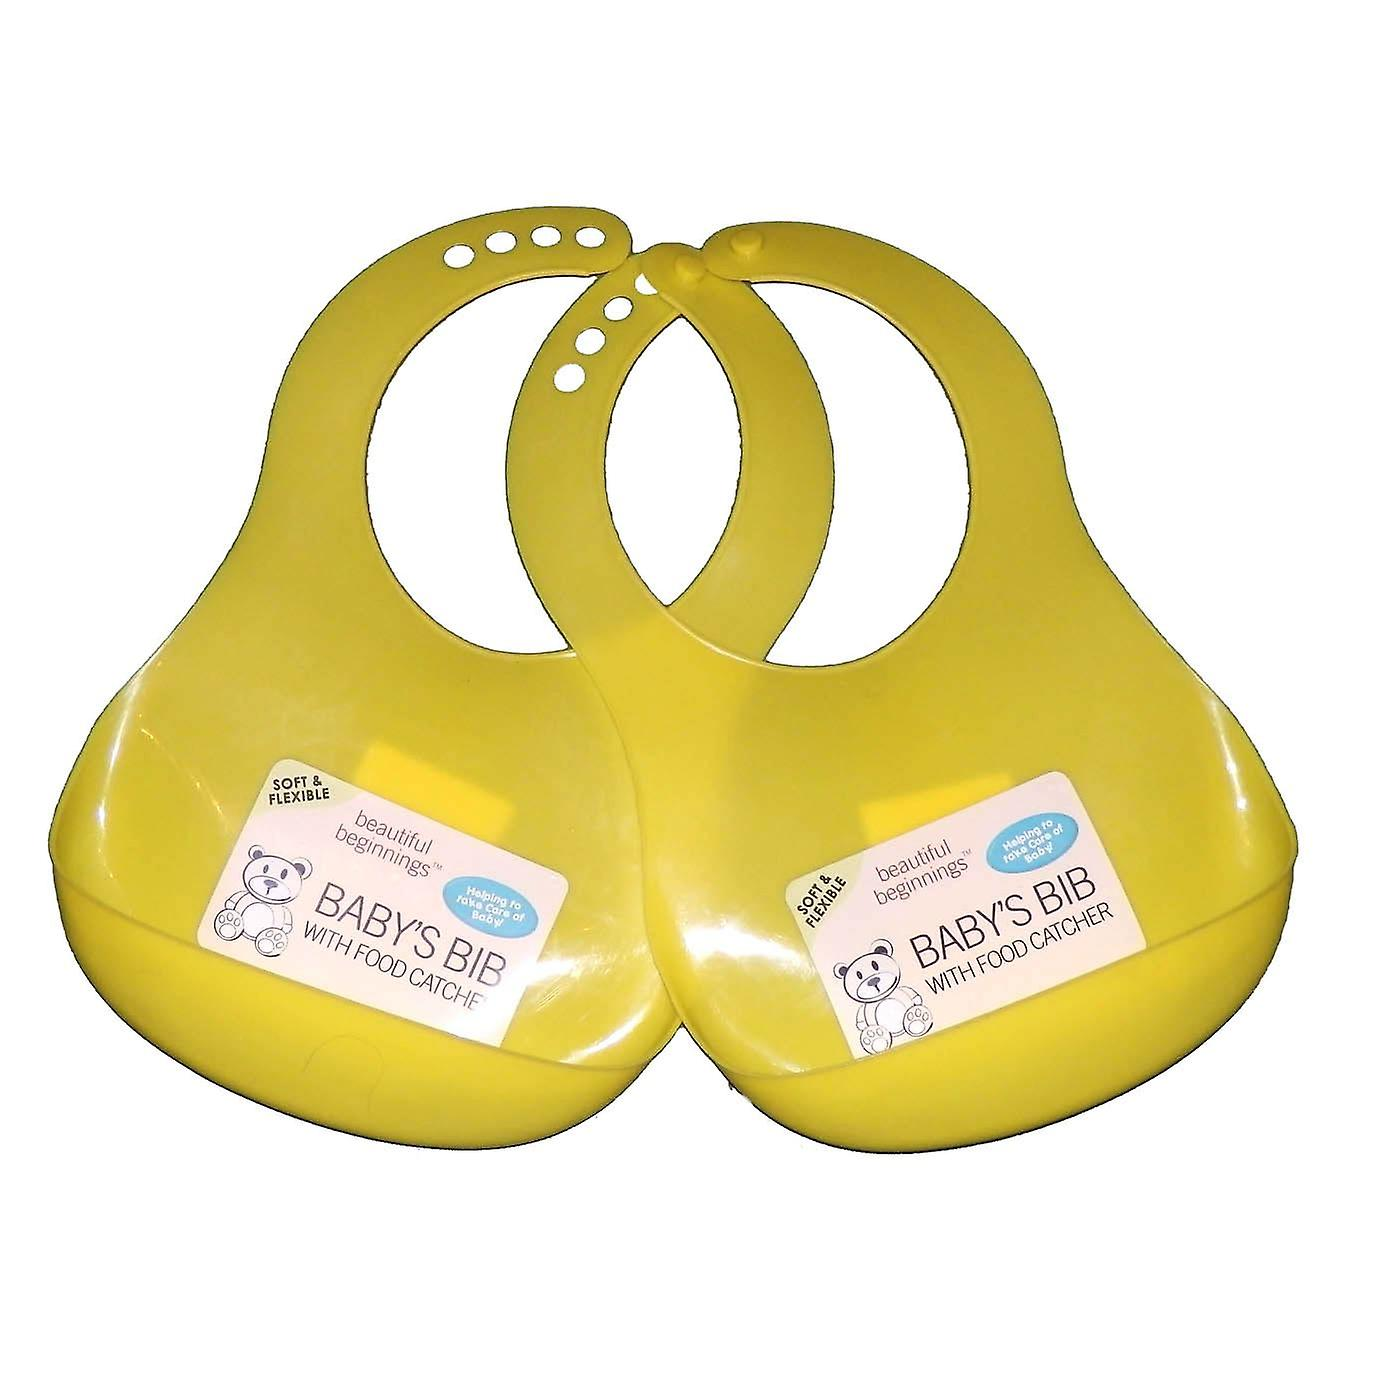 2 x Baby First Soft and Flexible Bib with Food Catcher